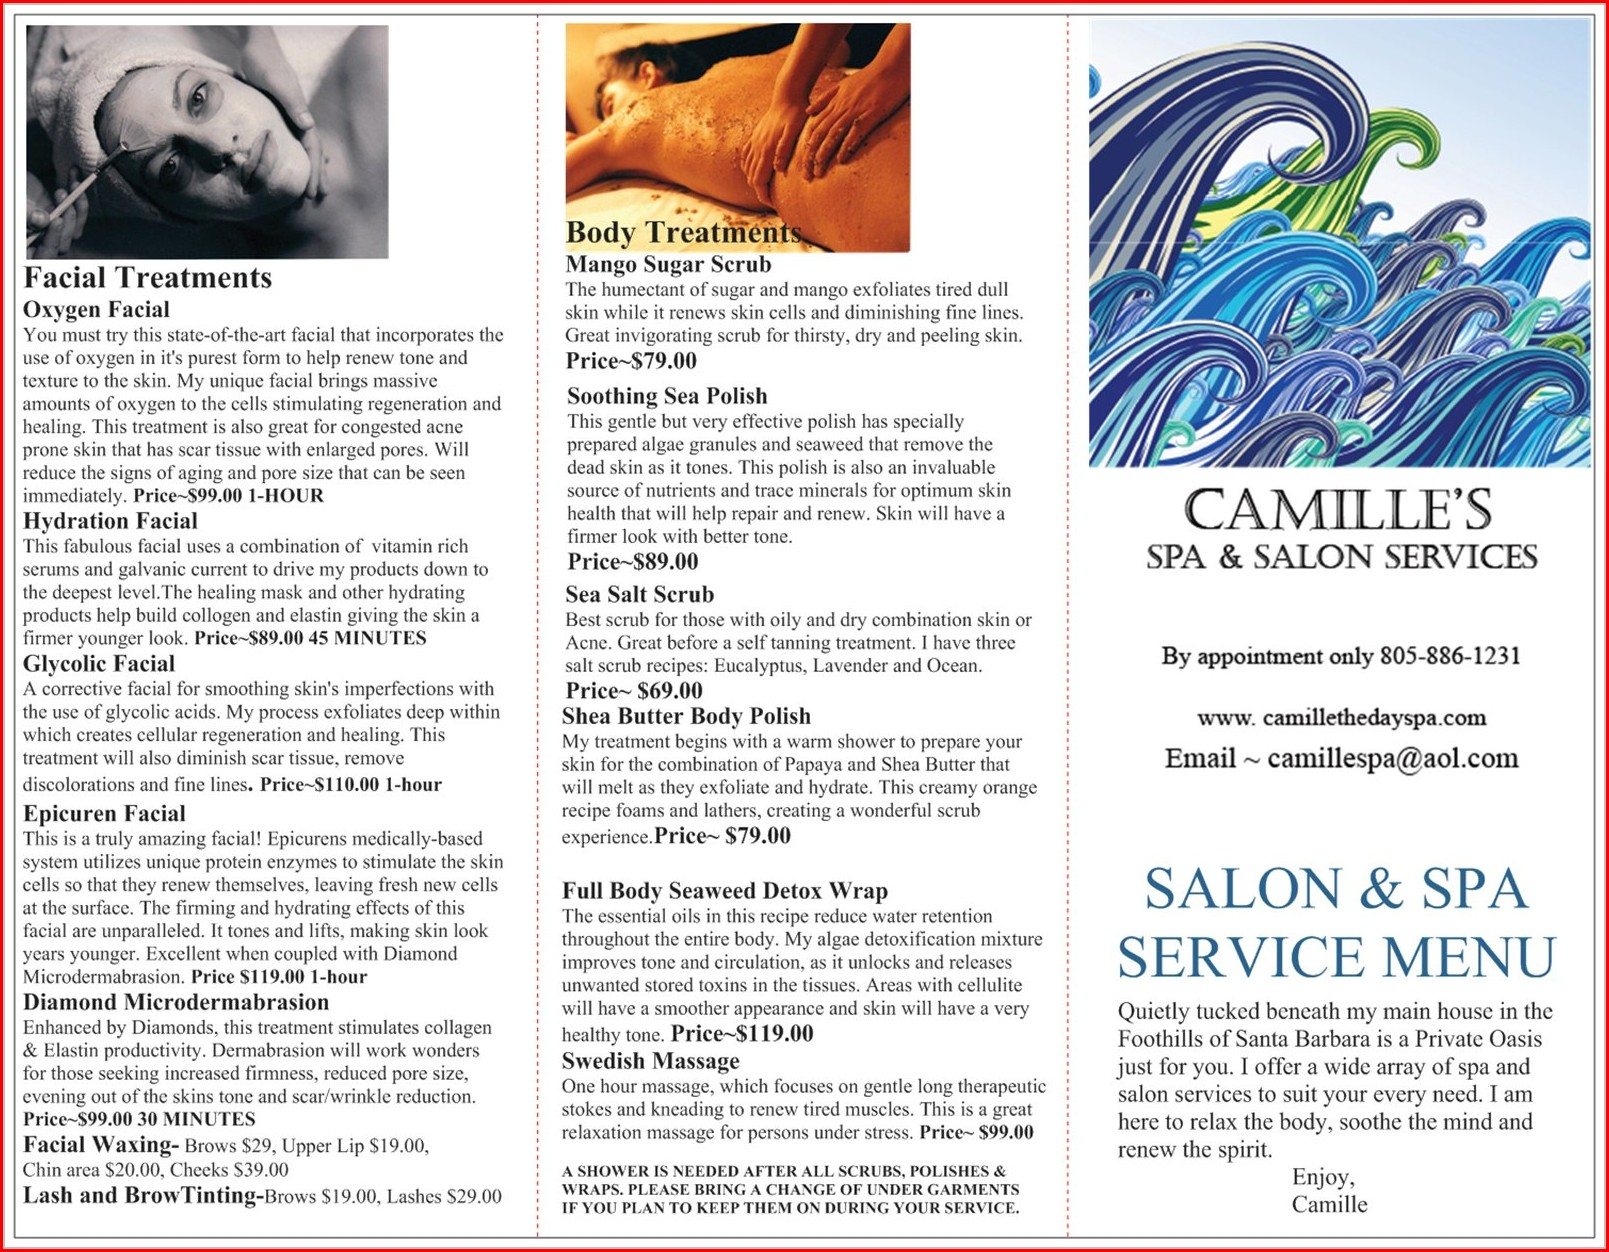 Hair Salon Service Menu Template